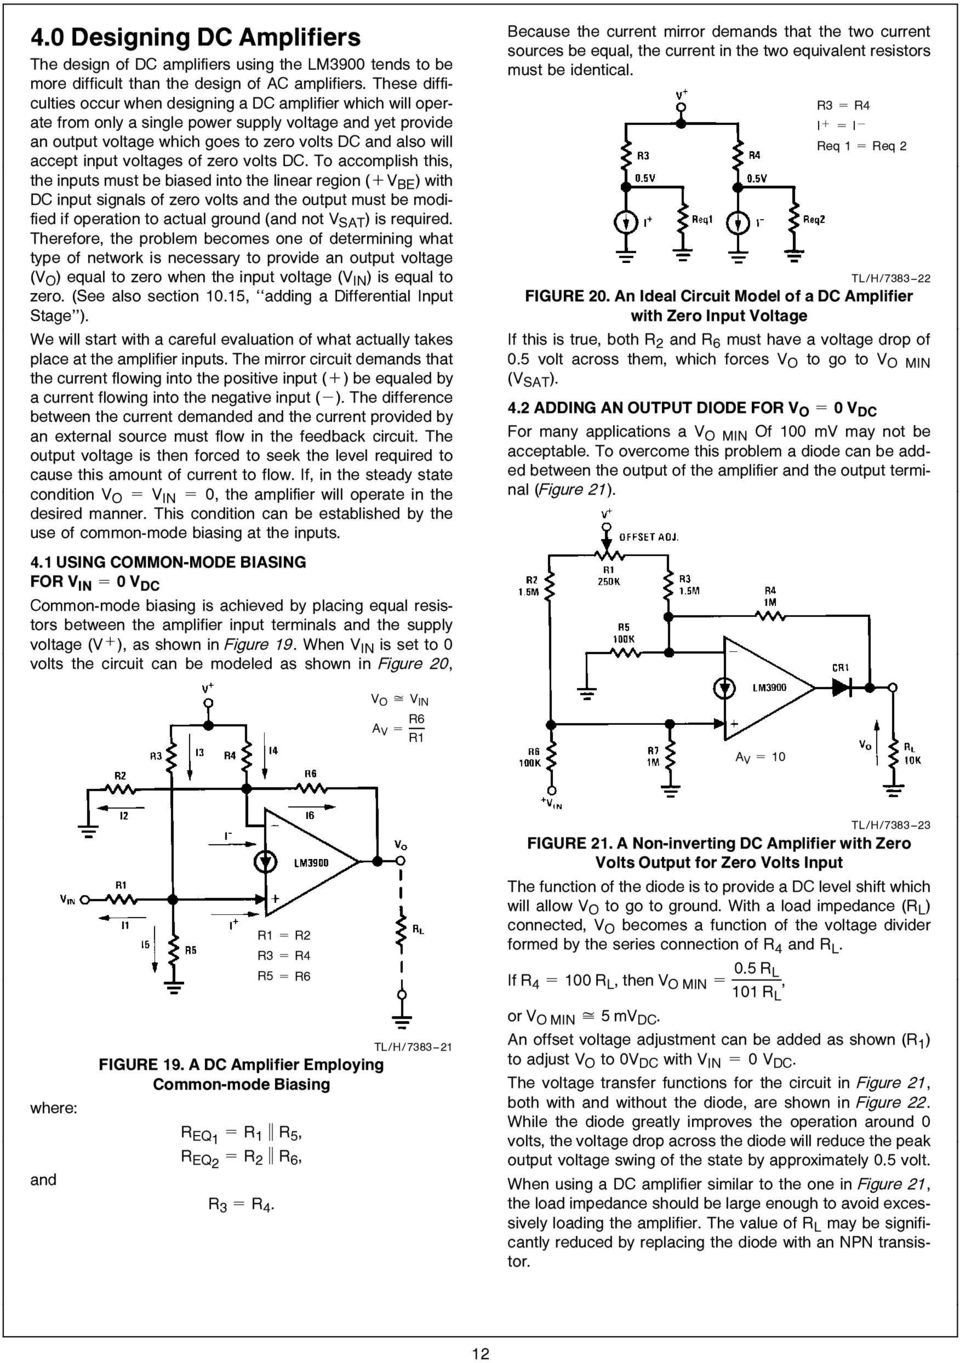 Lm3900 An 72 The A New Current Differencing Quad Of Plus Or Channel Audio Mixer Circuit Using Simple Schematic Diagram Be Biased Into Linear Region Av With Dc Input Signals Zero